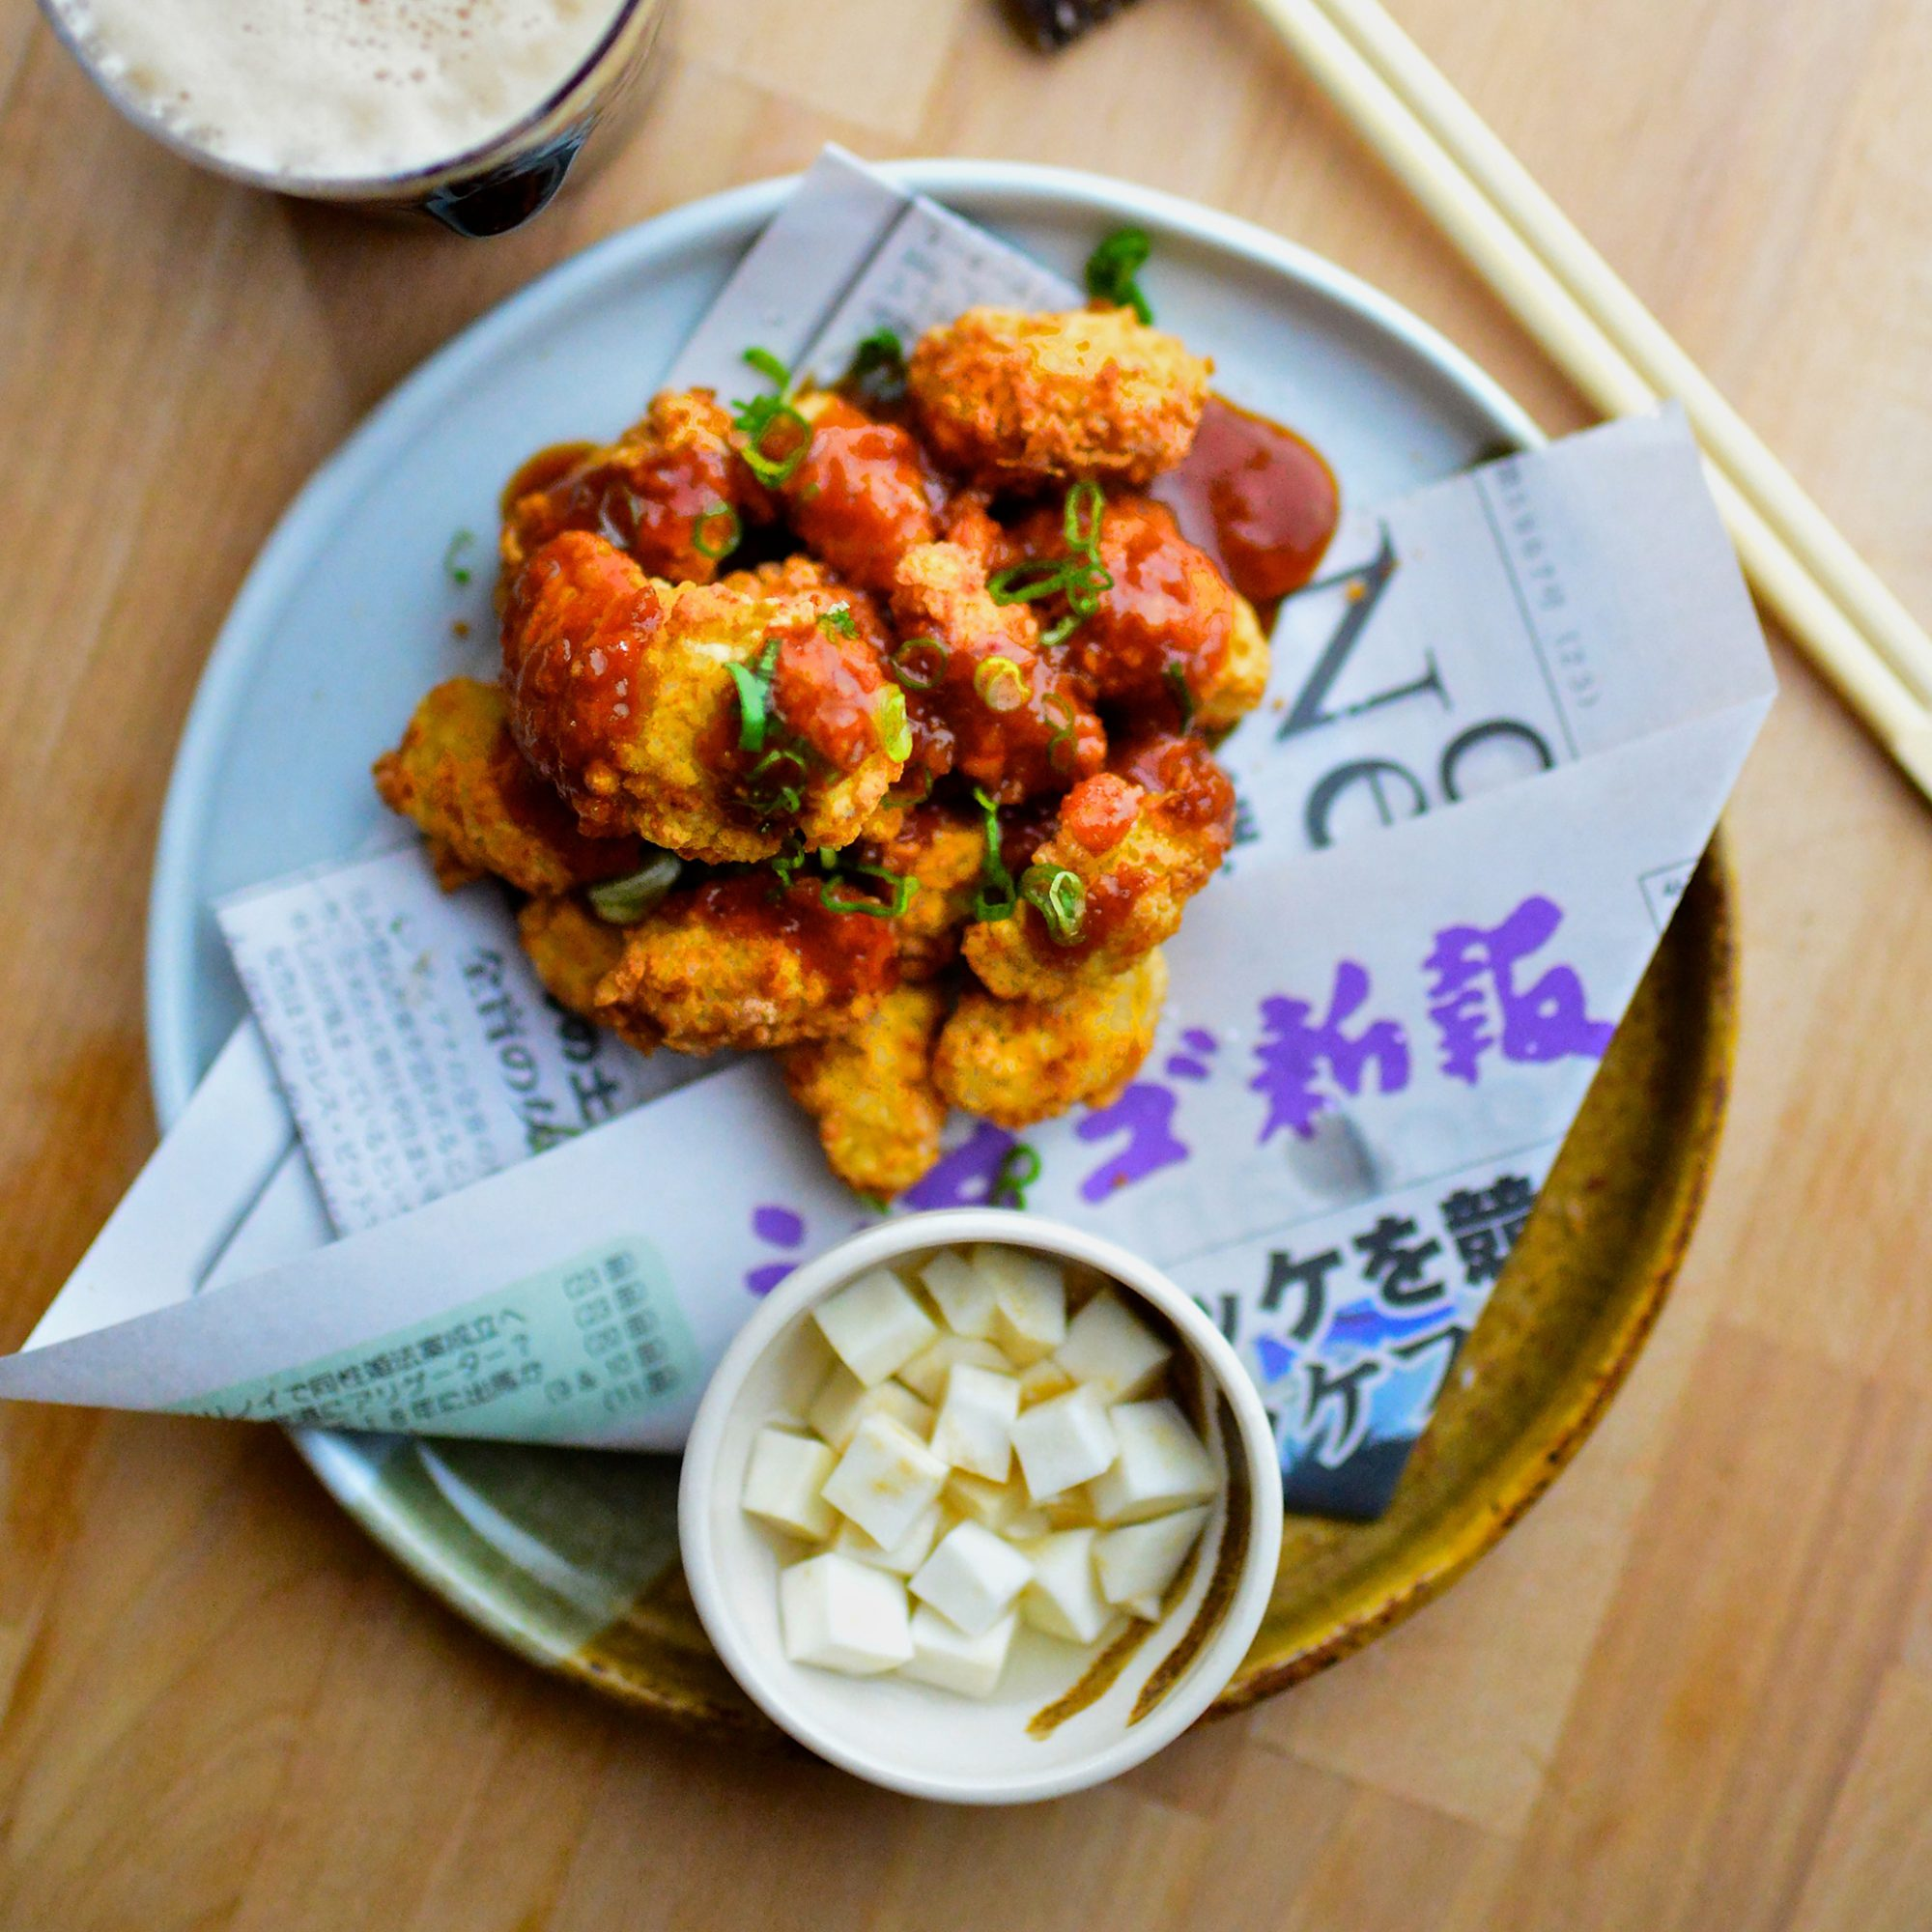 FWX QUACKY MOUNTAIN OYSTERS